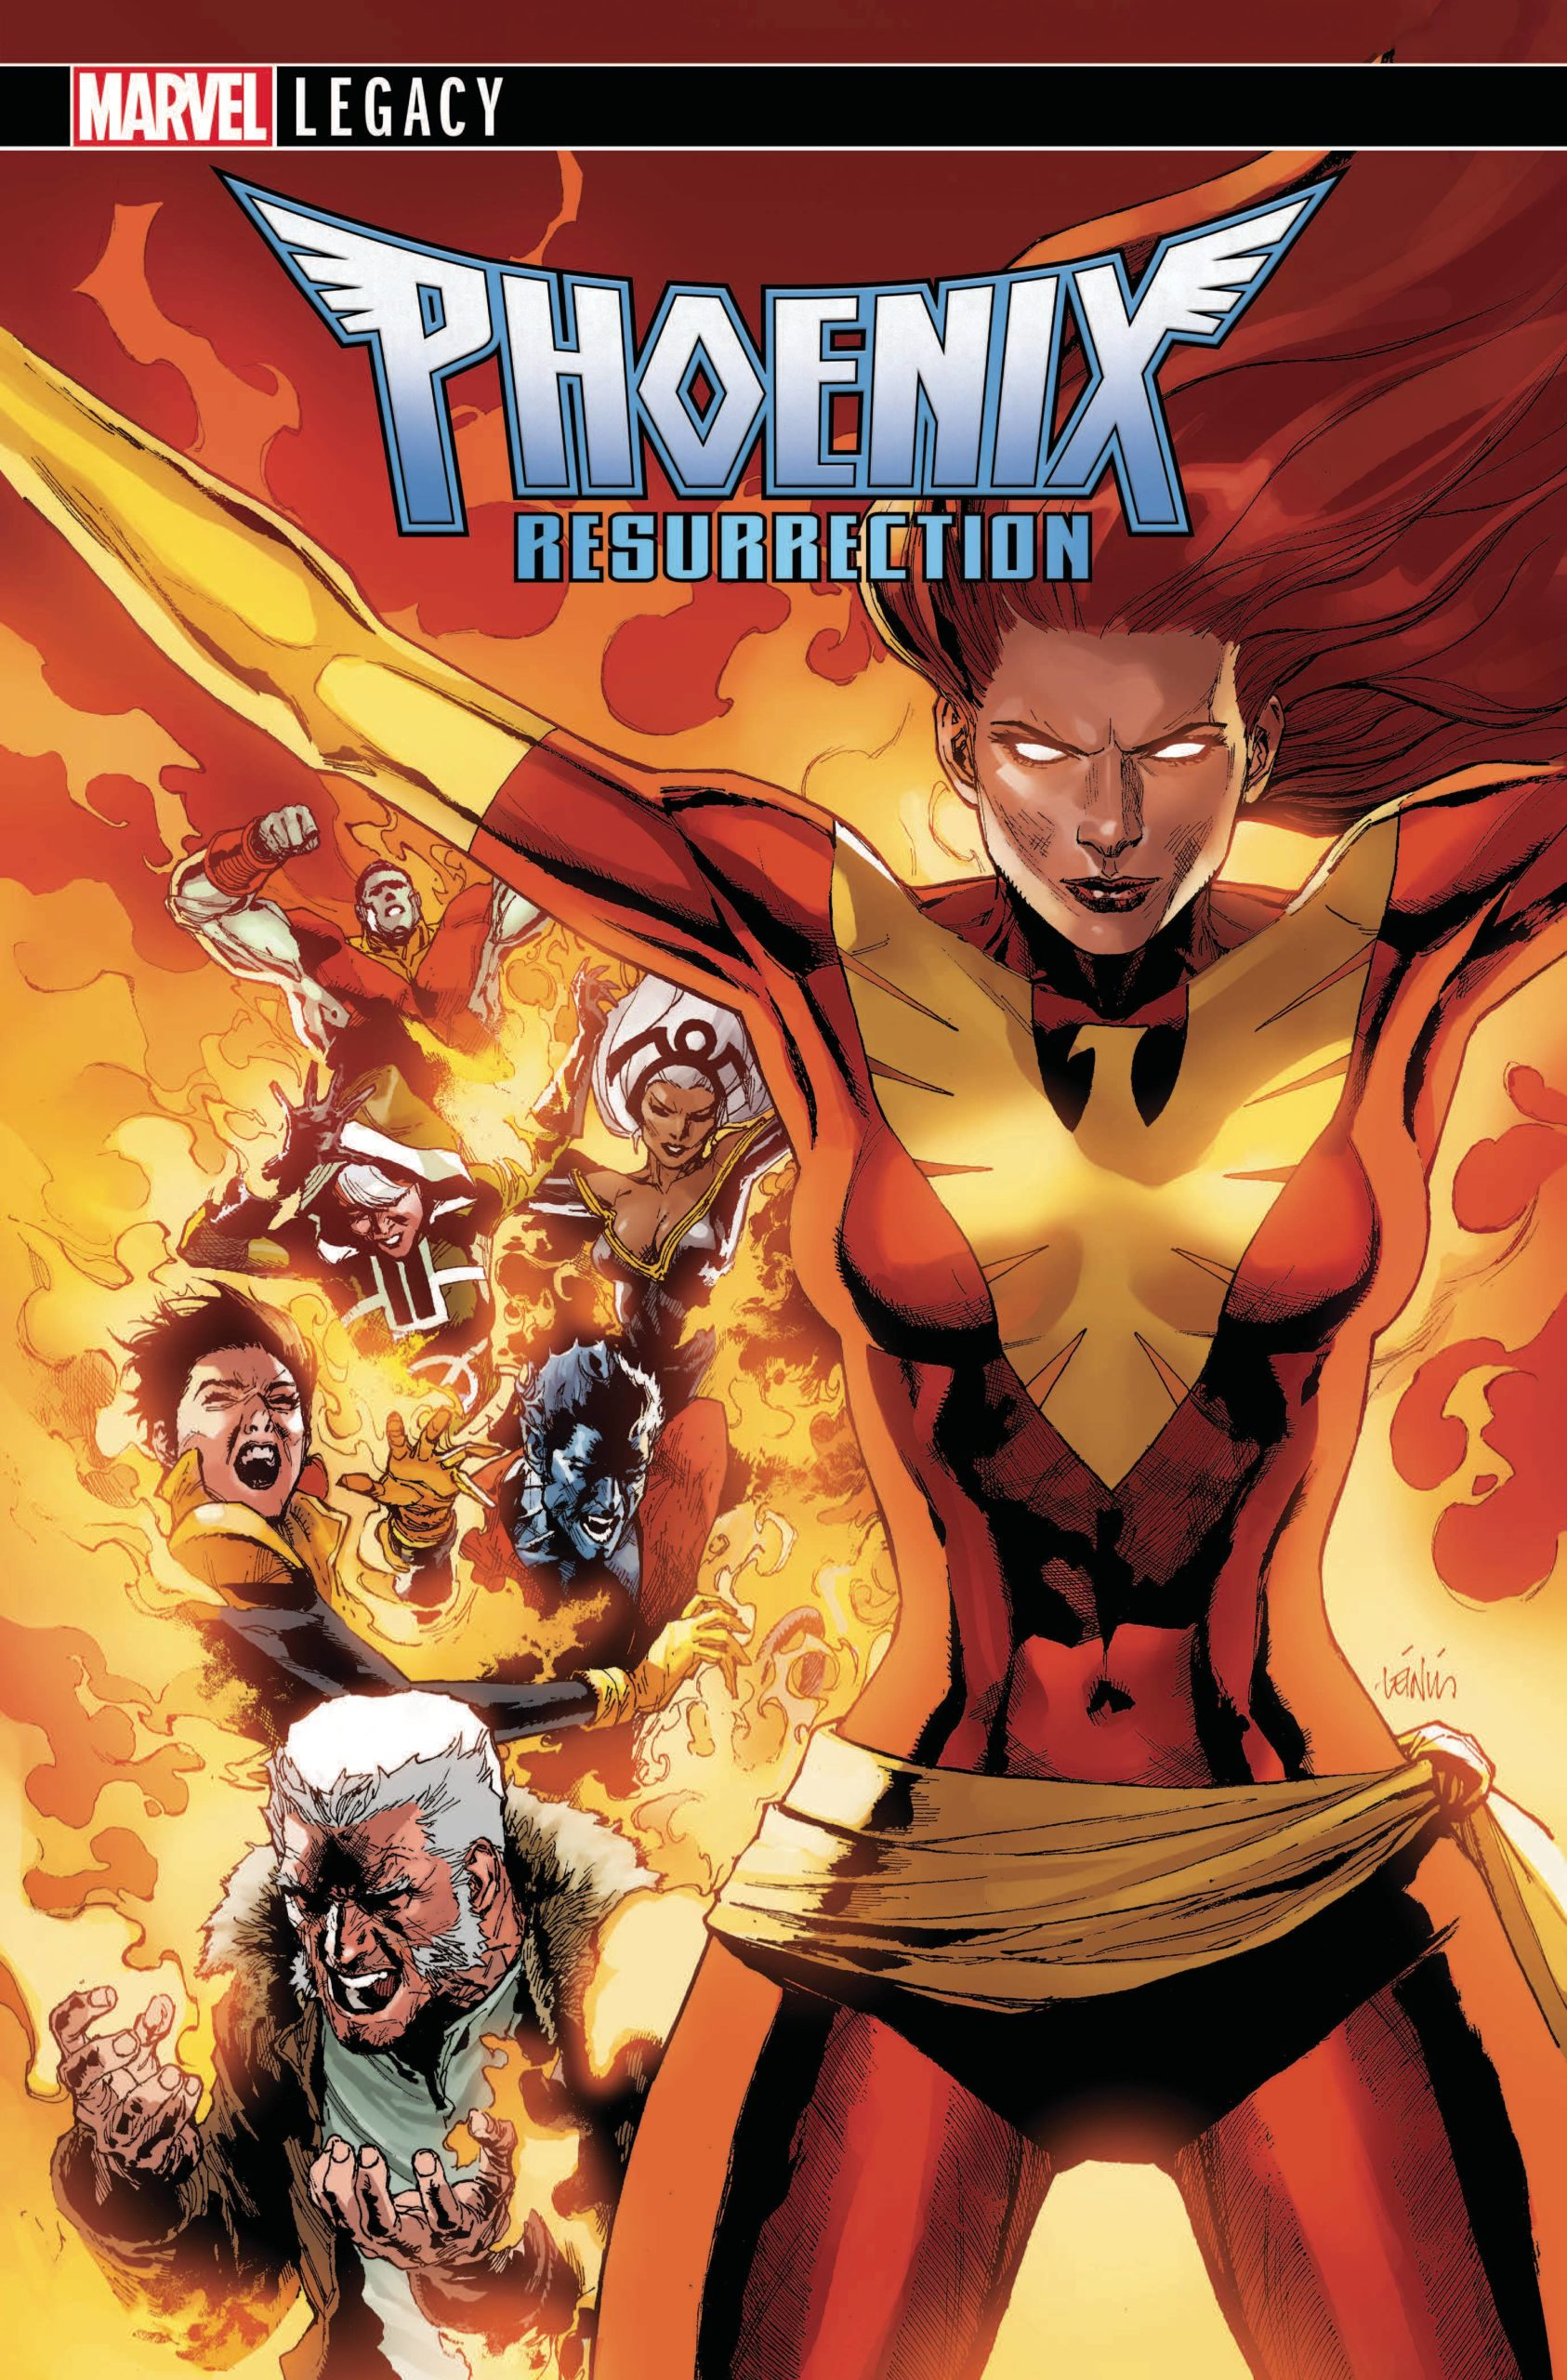 PHOENIX RESURRECTION: RETURN OF JEAN GREY (MS 5)